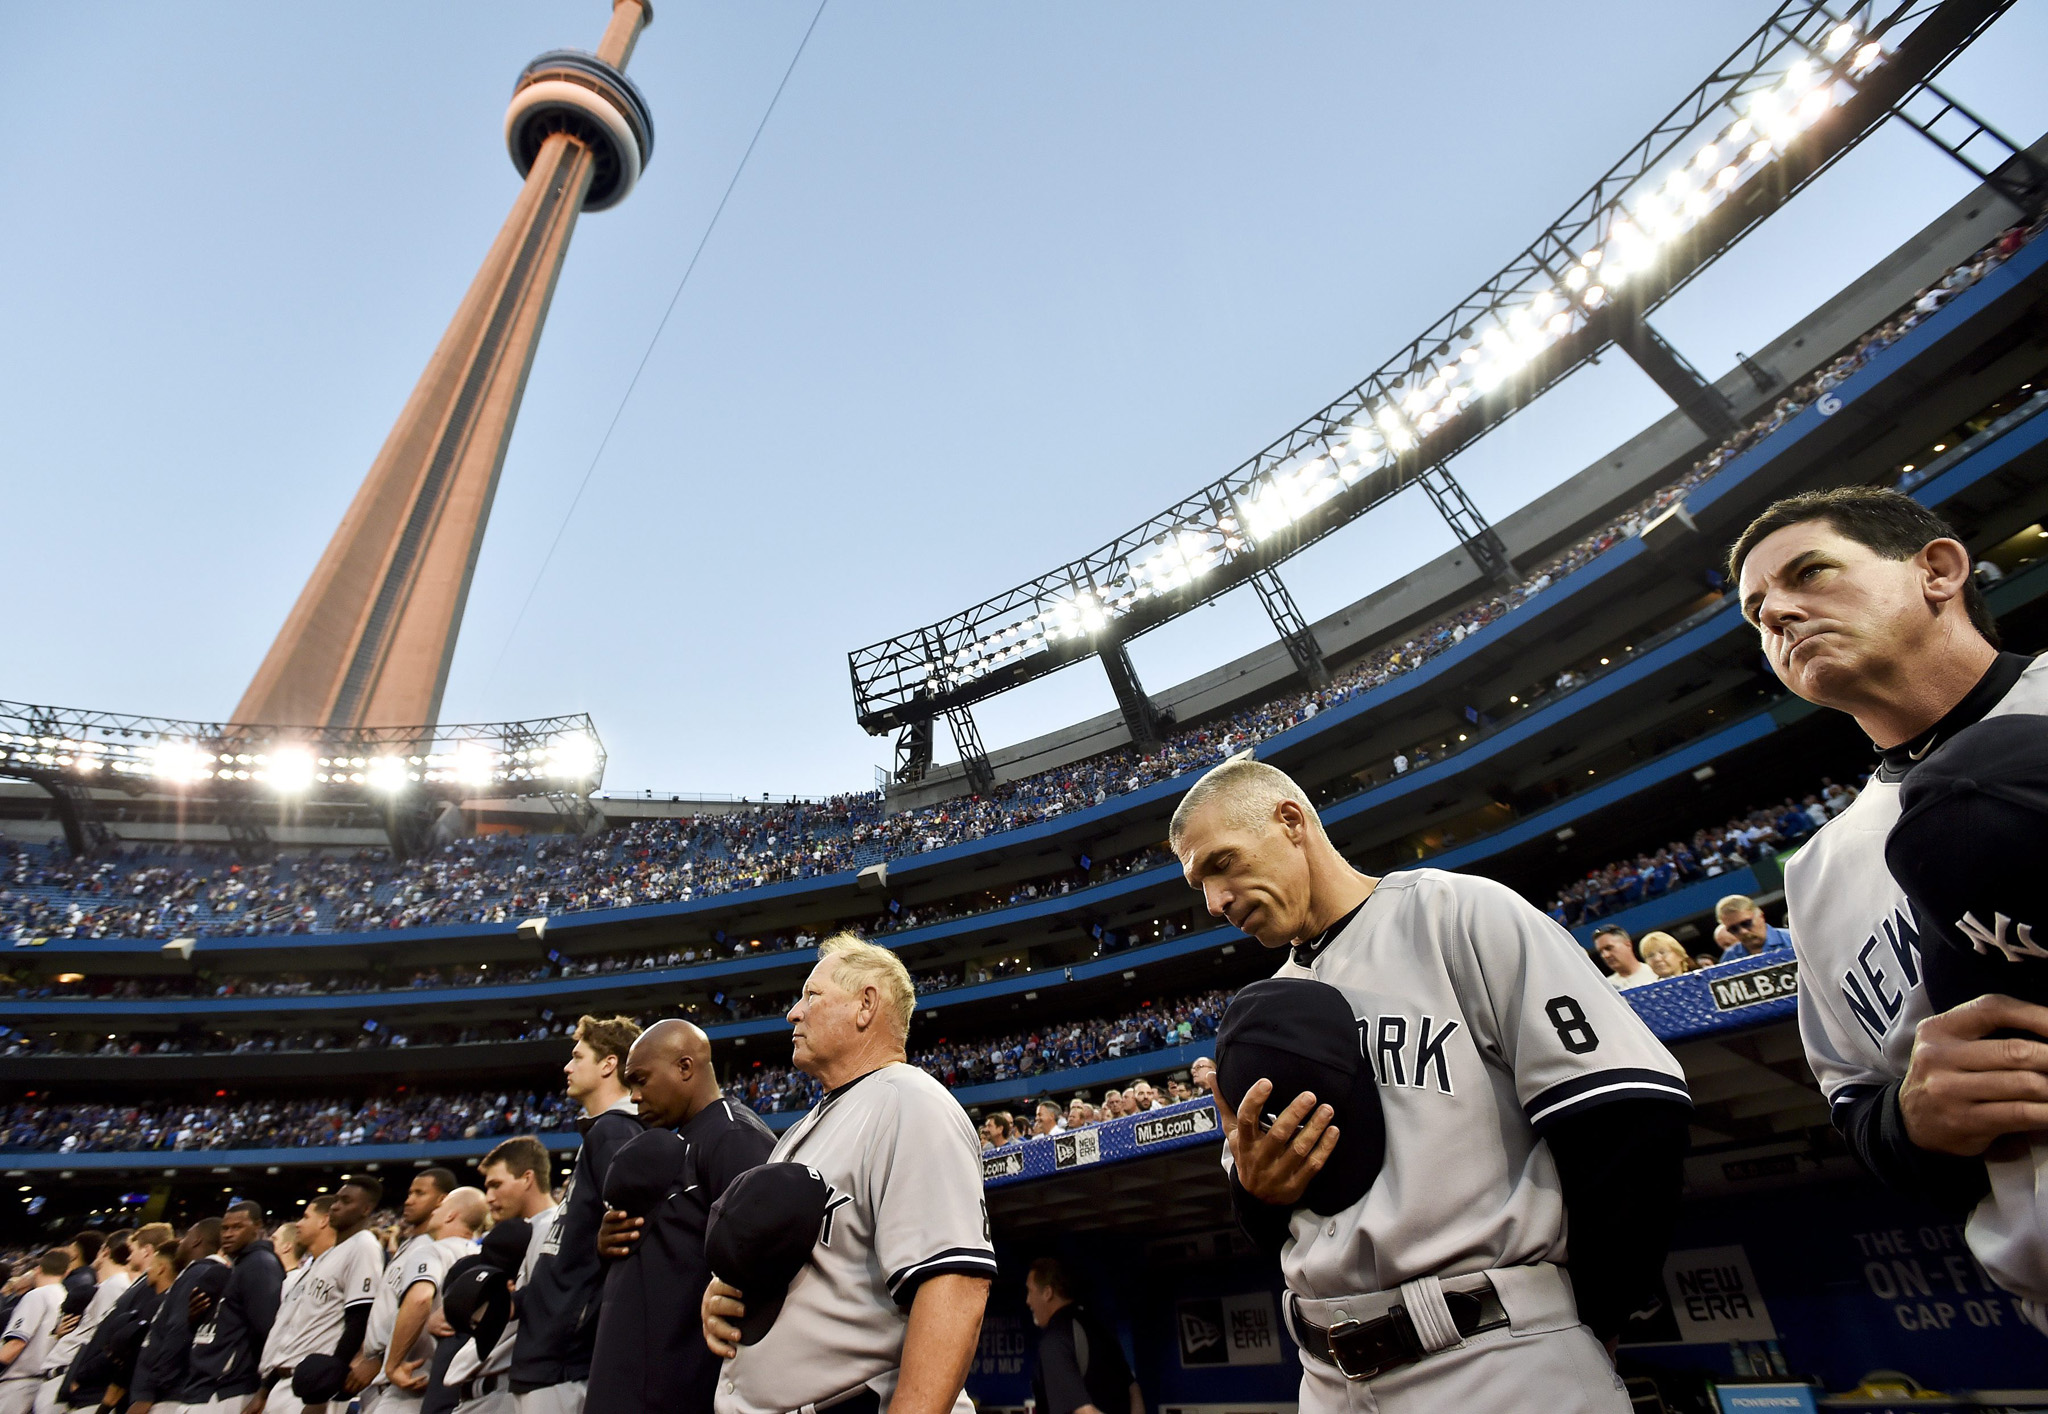 New York Yankees manager Joe Girardi, second from right, and players and coaches take part in a moment of silence as they wear the No. 8 to remember Hall of Fame catcher Yogi Berra, who died Tuesday, before the Yankees' baseball game against the Toronto Blue Jays in Toronto on